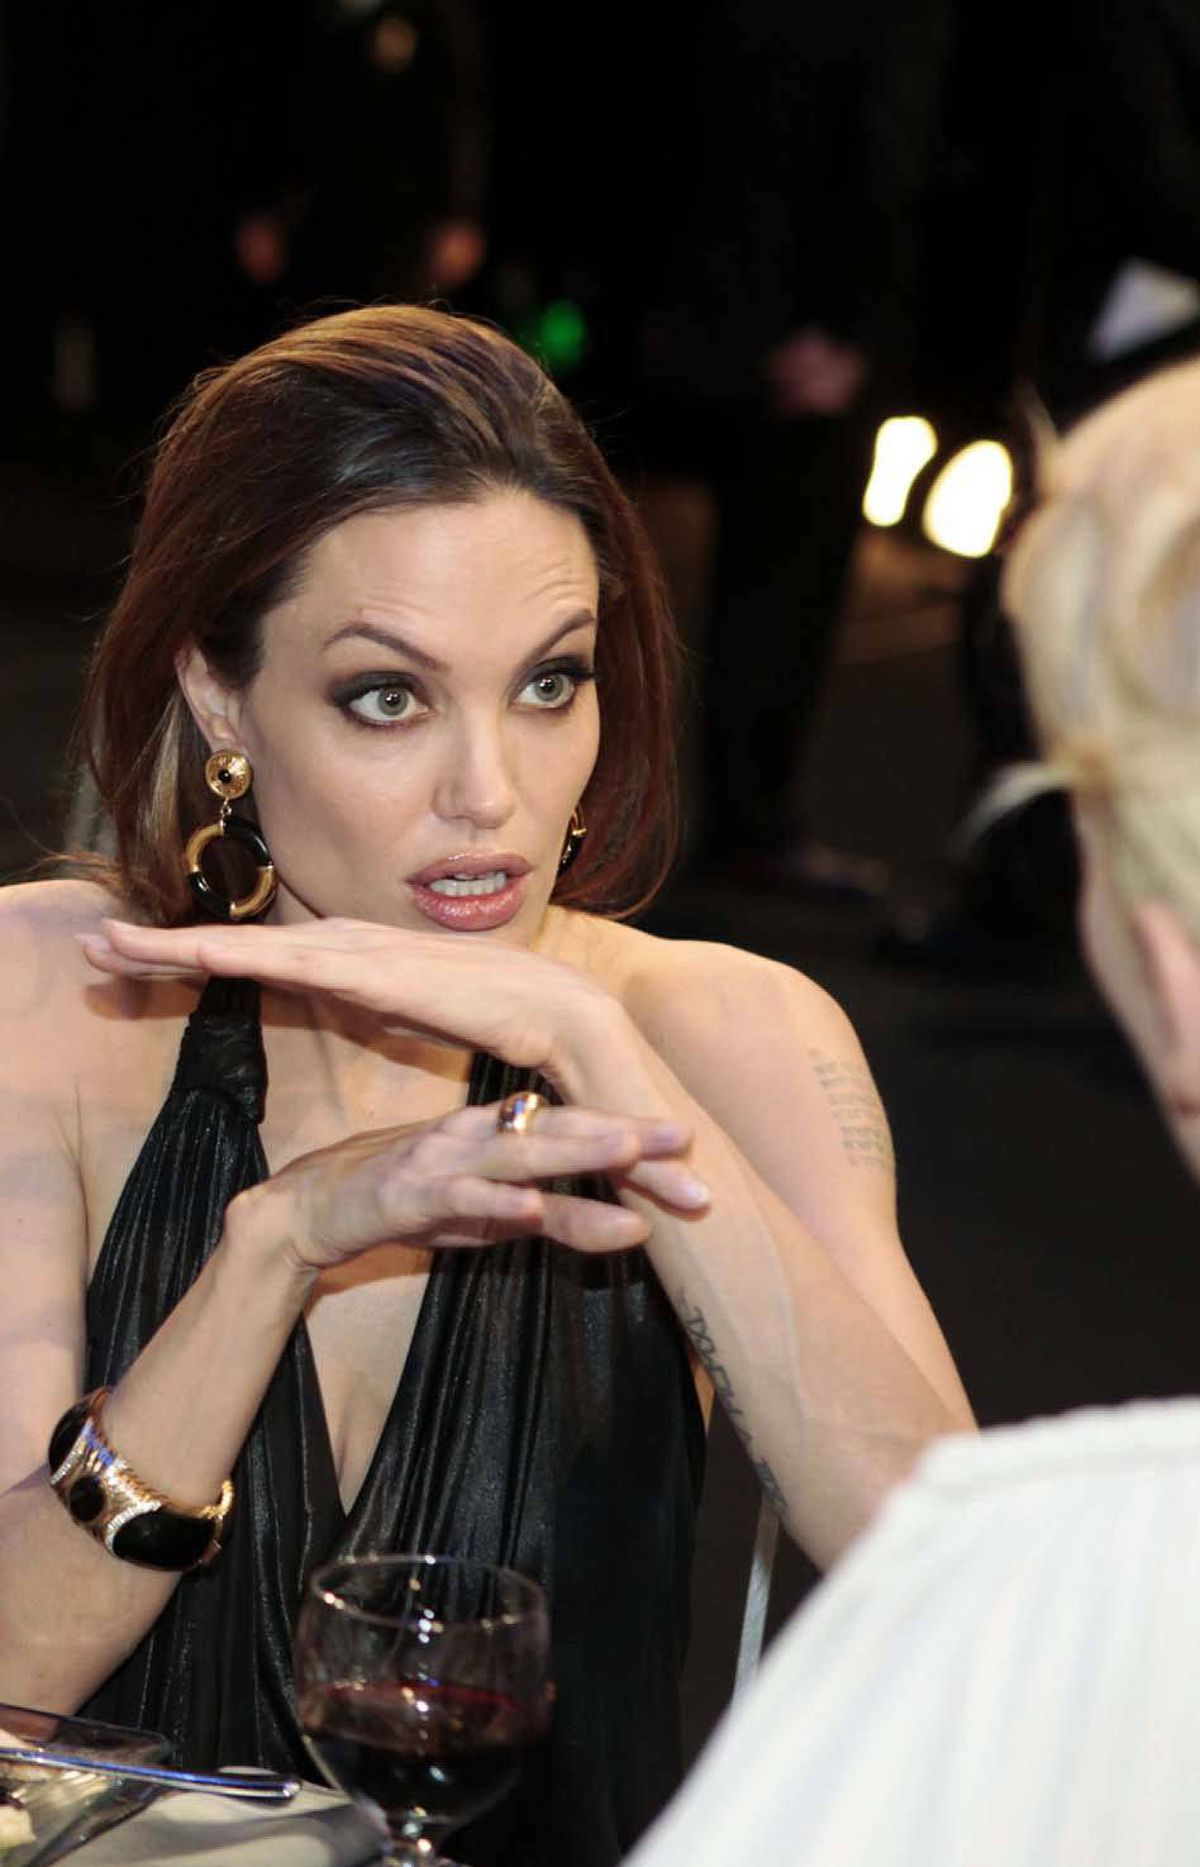 And here we see Angelina Jolie casting an evil curse on Tilda Swinton.